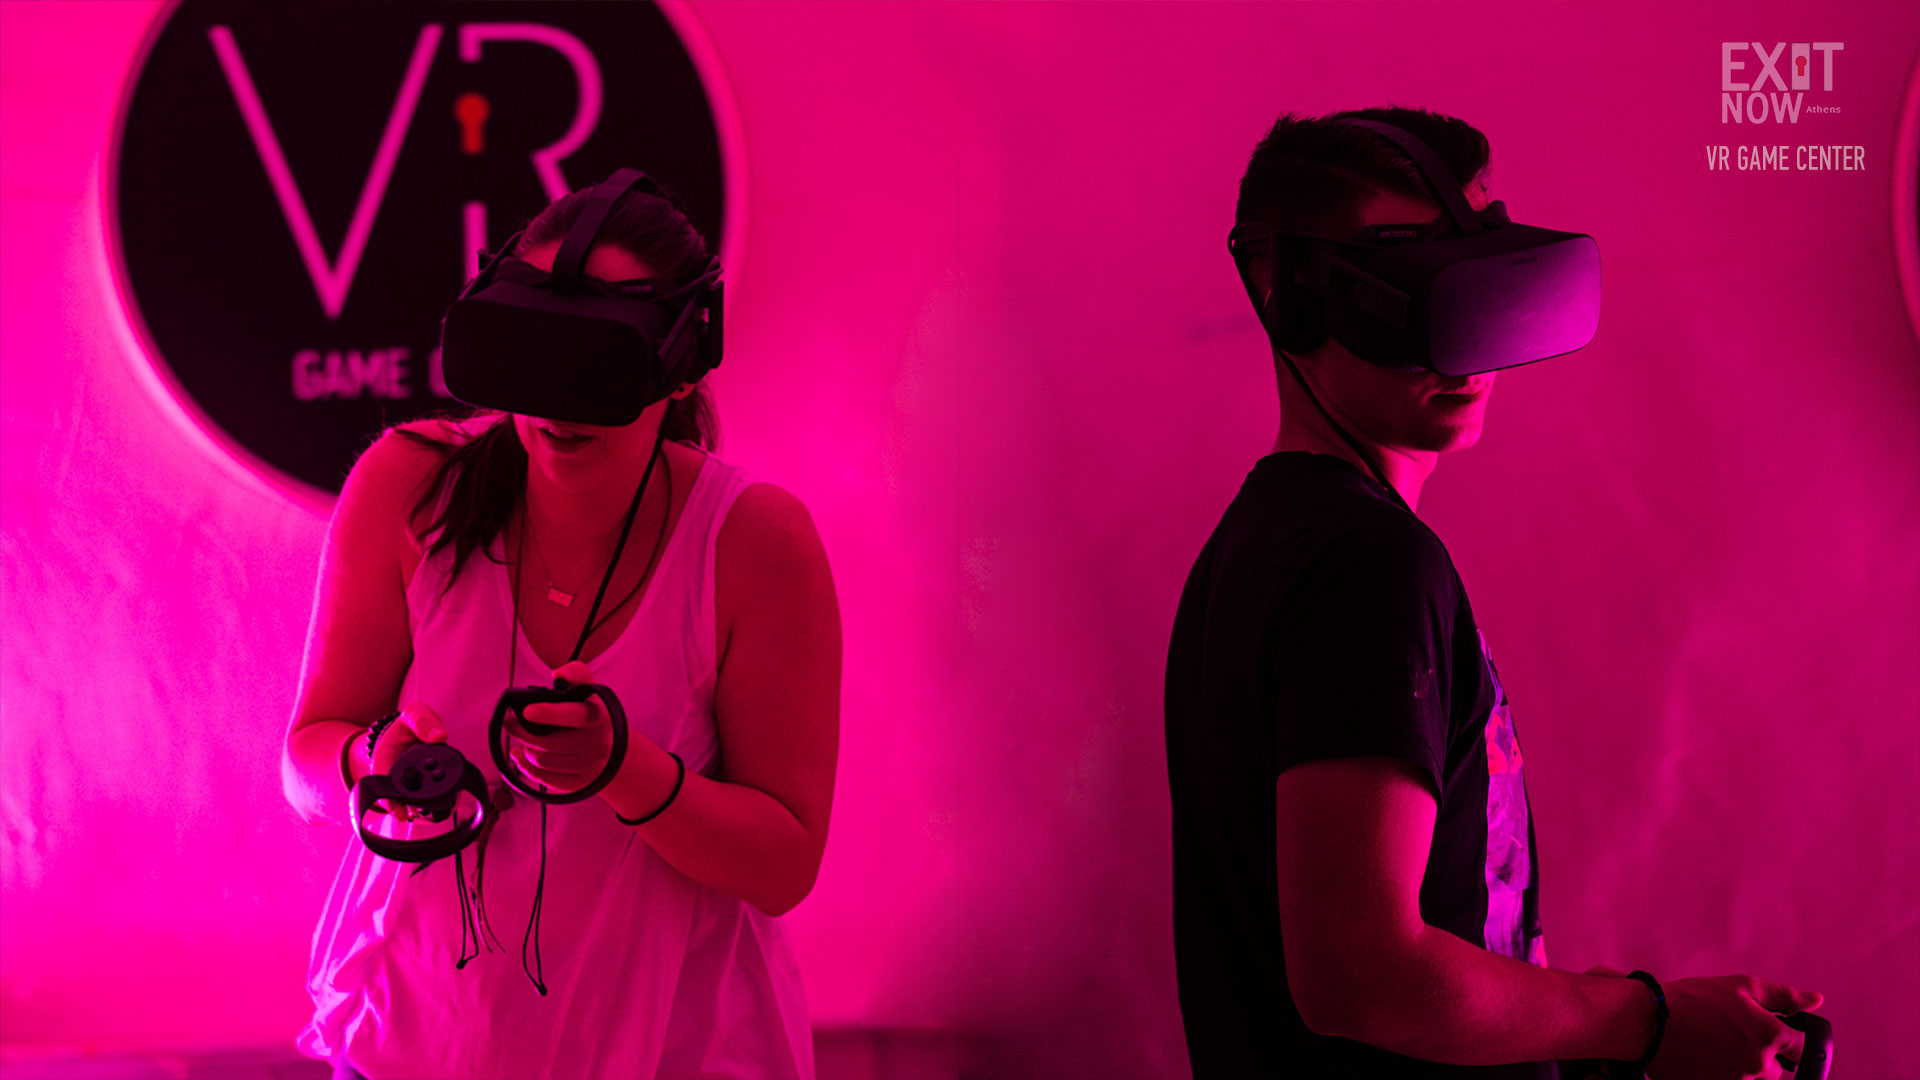 VR GAME CENTER EXIT NOW 1 | EXIT NOW | Live Game Experience | Escape Room | Services